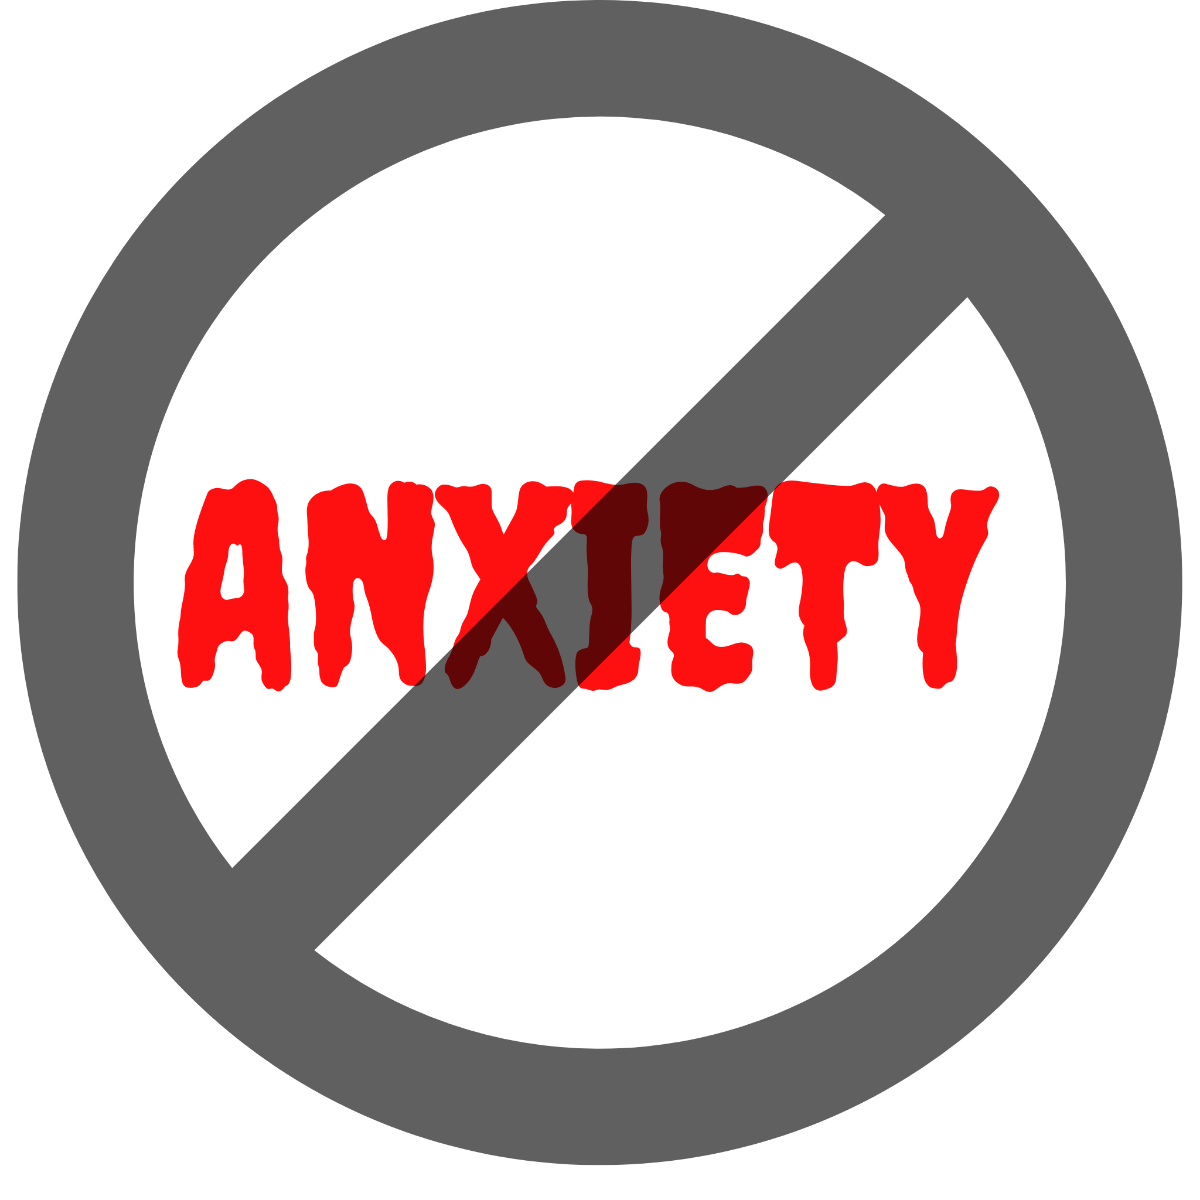 text saying anxiety with a cancel sign through it